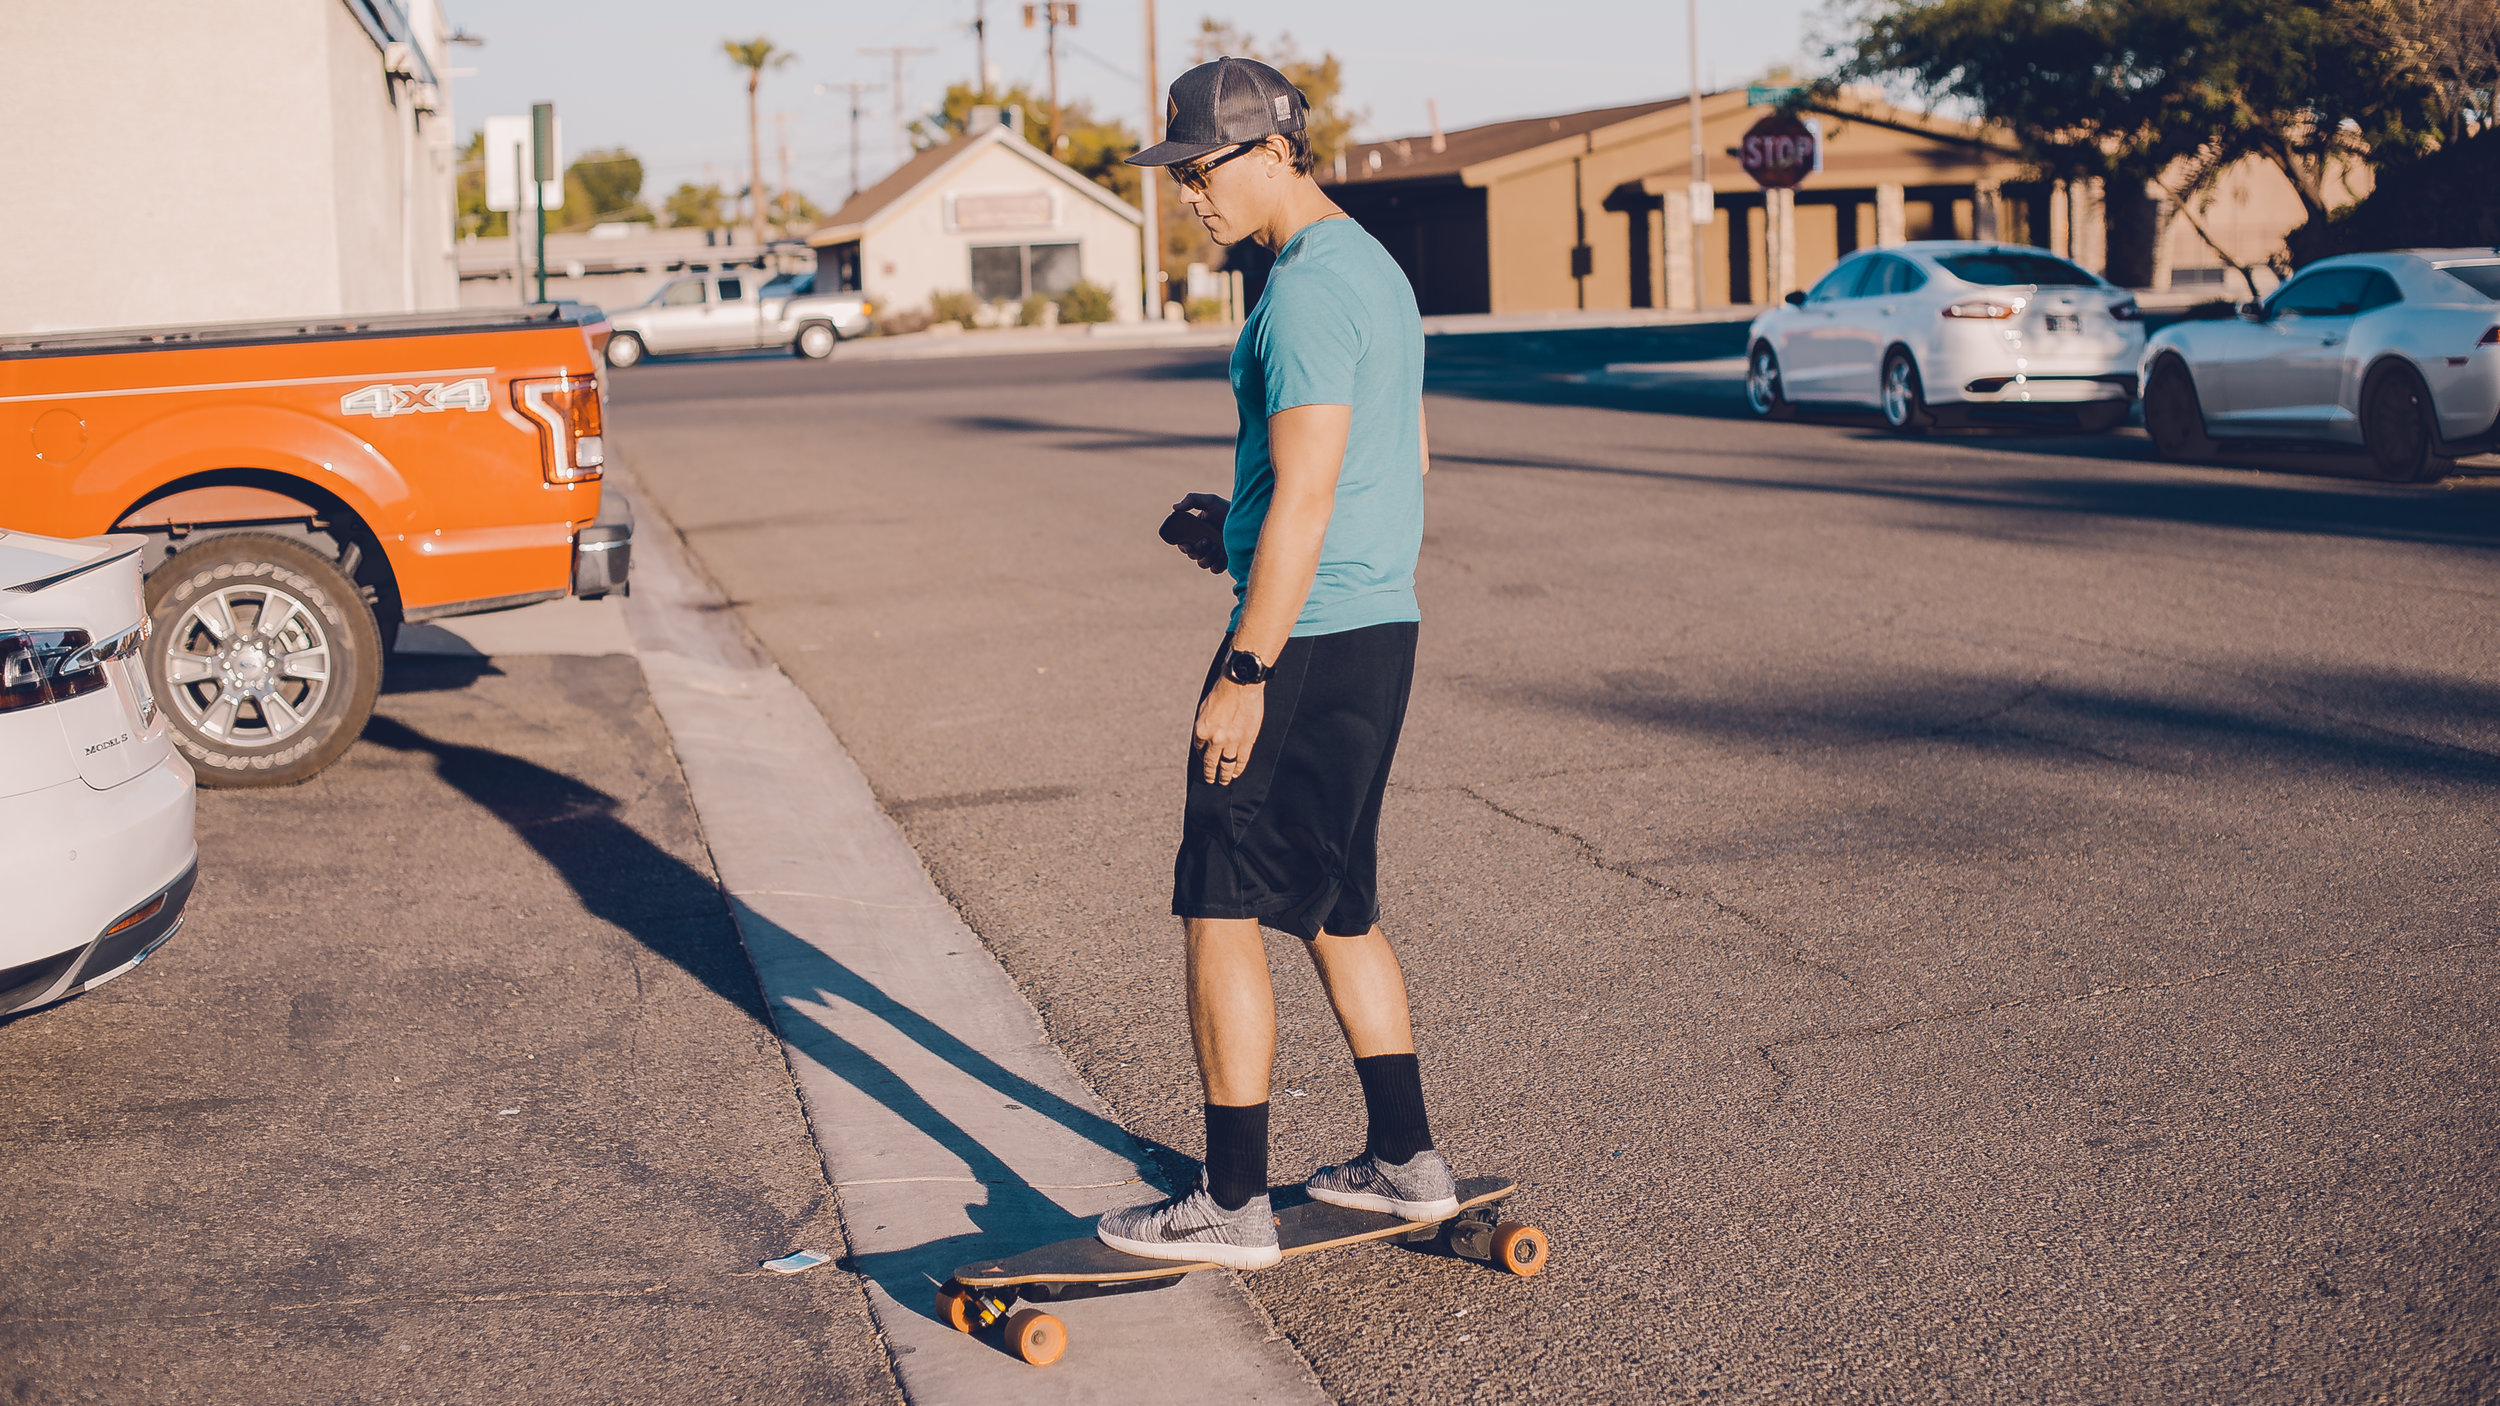 BOOSTED-5.jpg